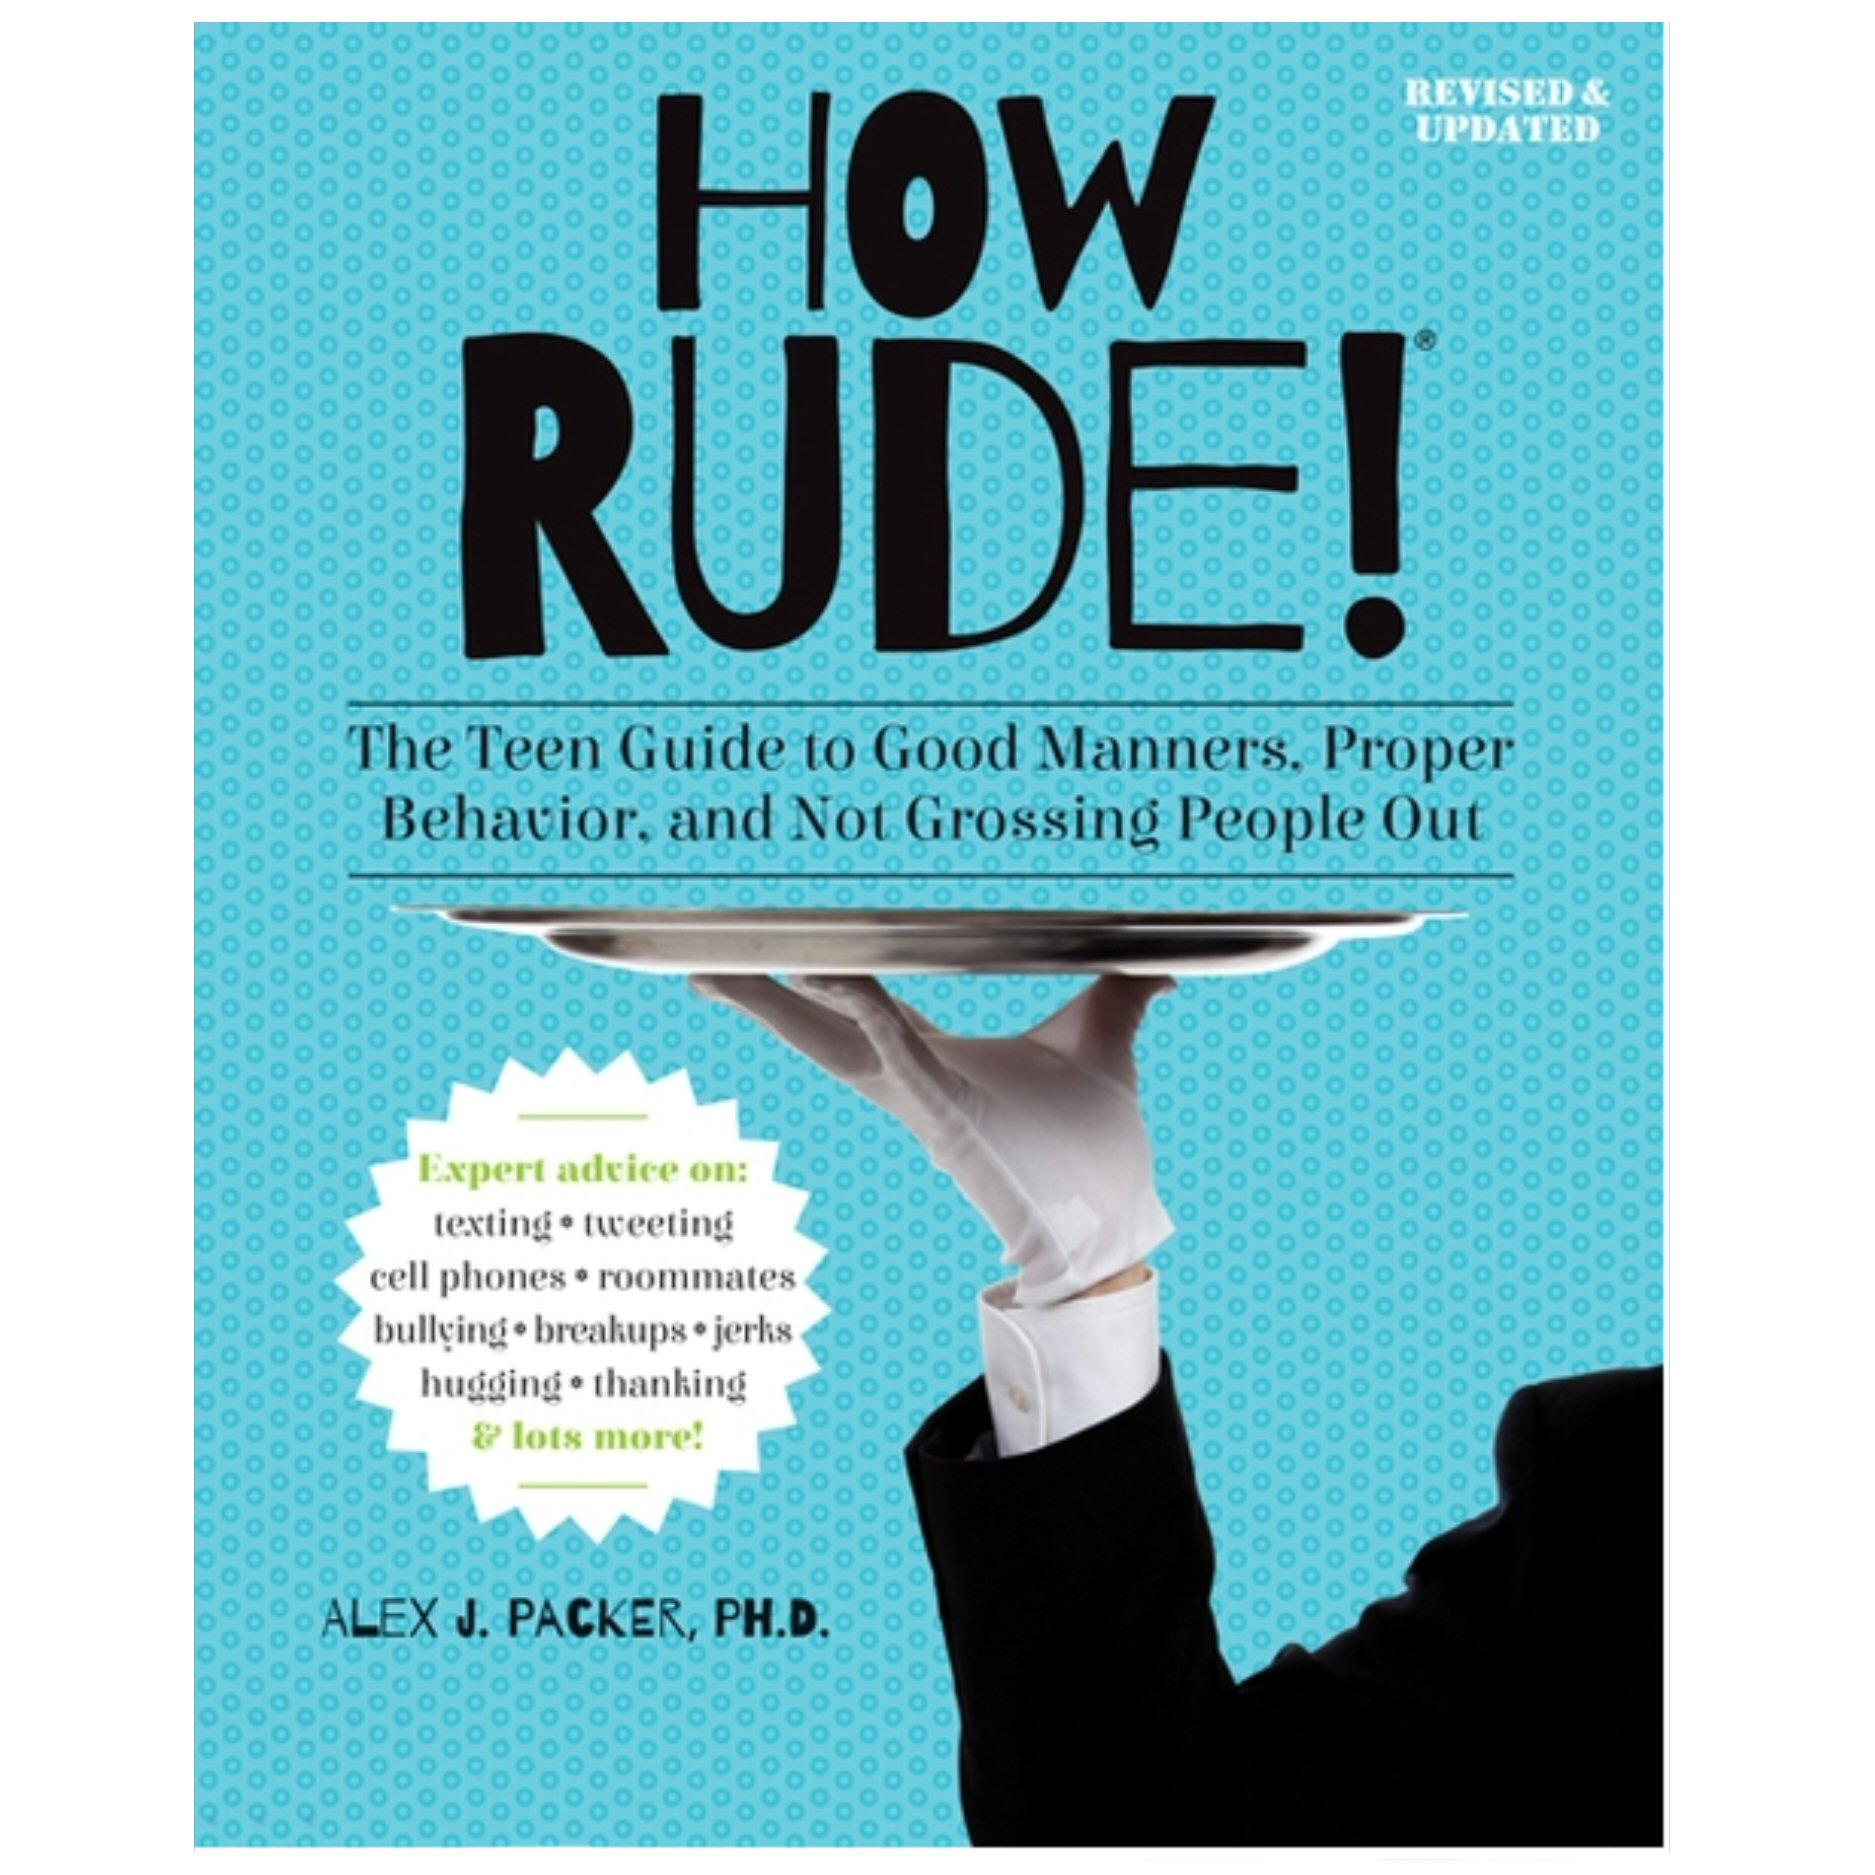 How Rude The Teen Guide To Good Manners Proper Behavior